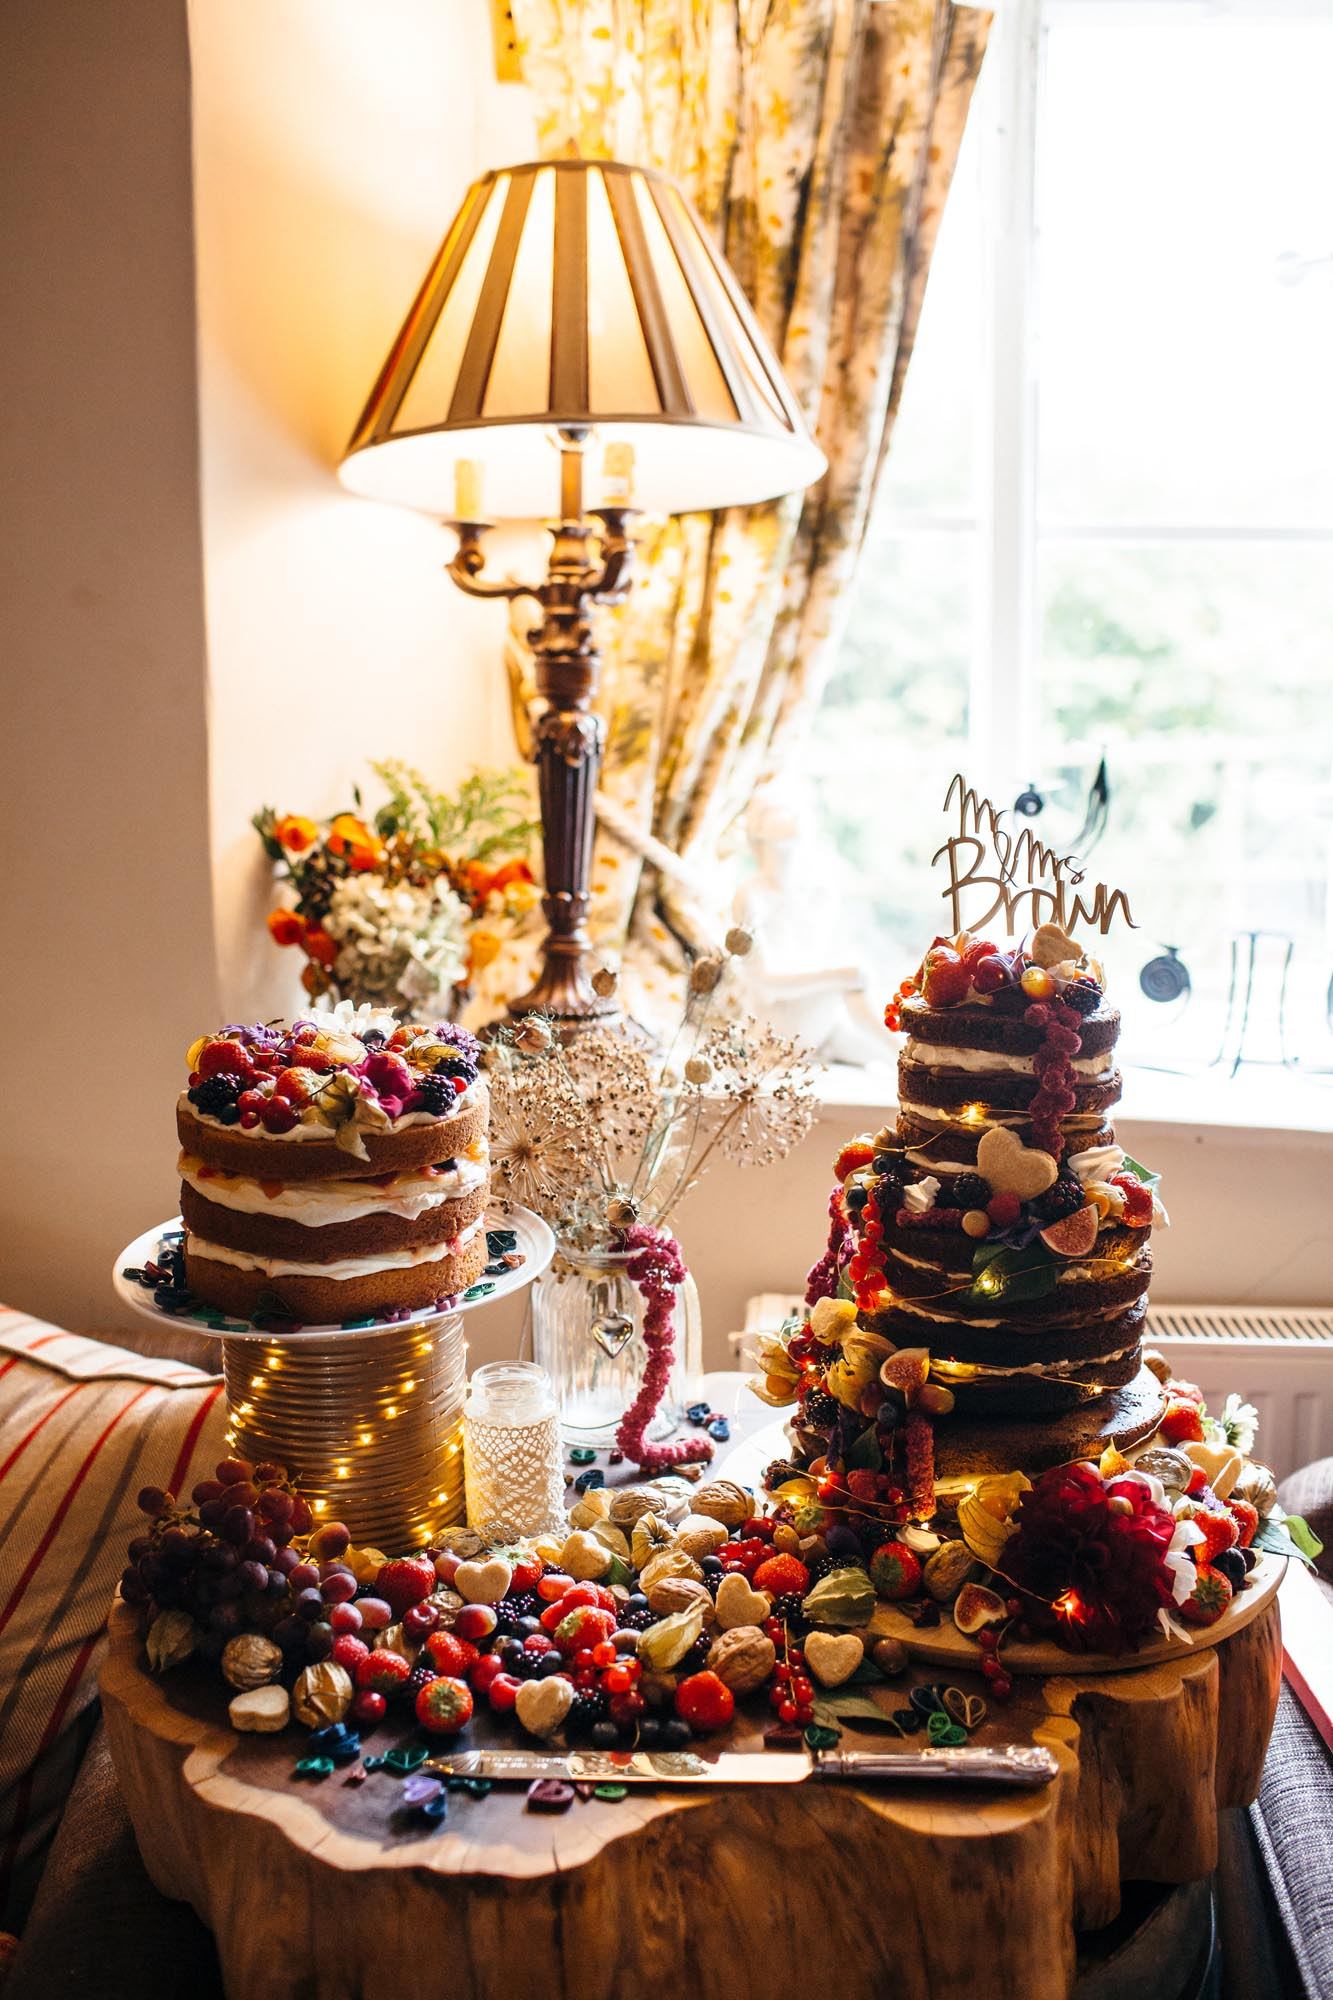 Danie & Callum Wedding Cakes Huntstile Farm